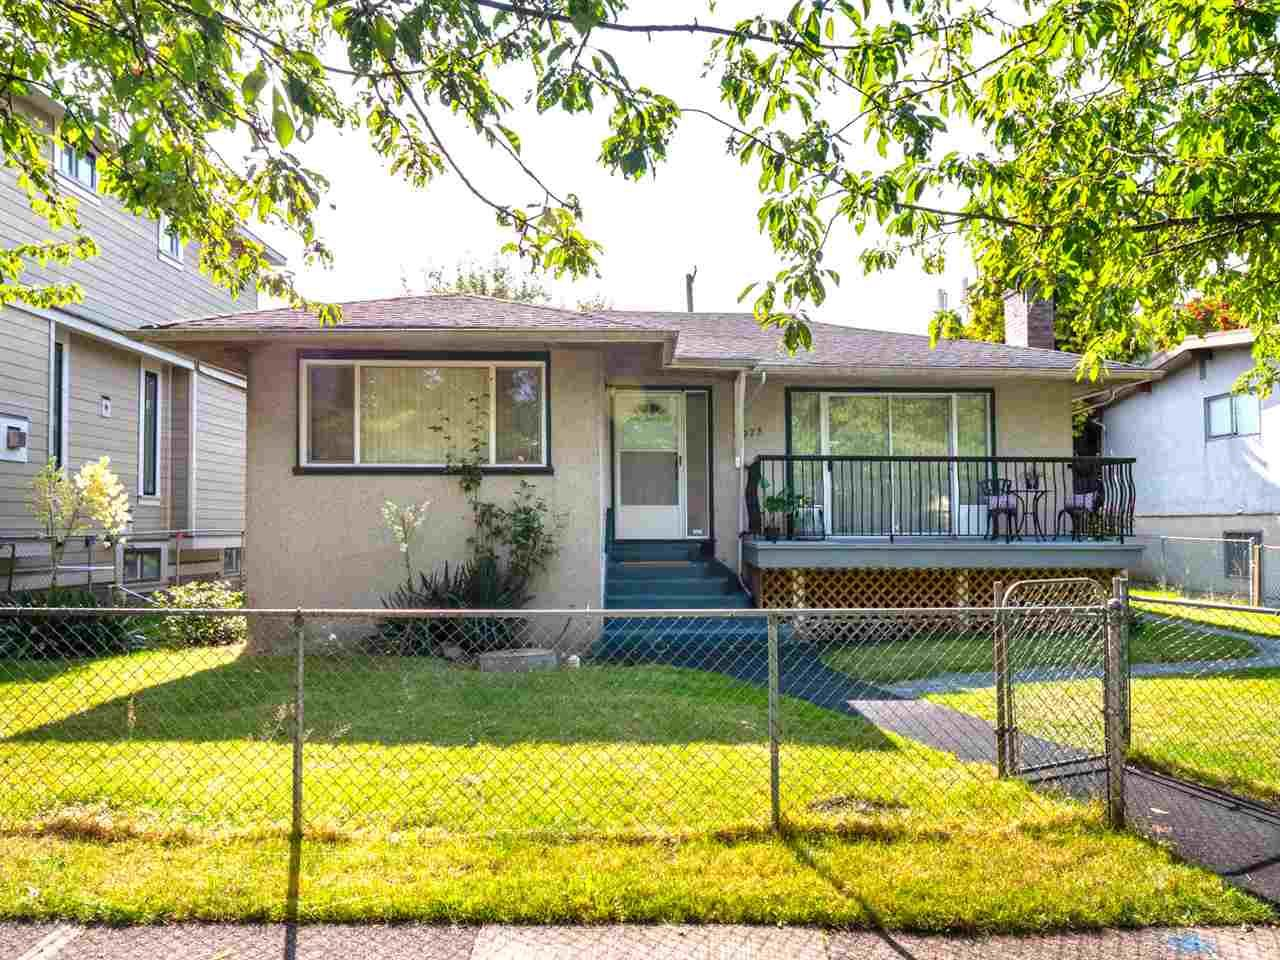 Main Photo: 4975 CHESTER Street in Vancouver: Fraser VE House for sale (Vancouver East)  : MLS®# R2398757